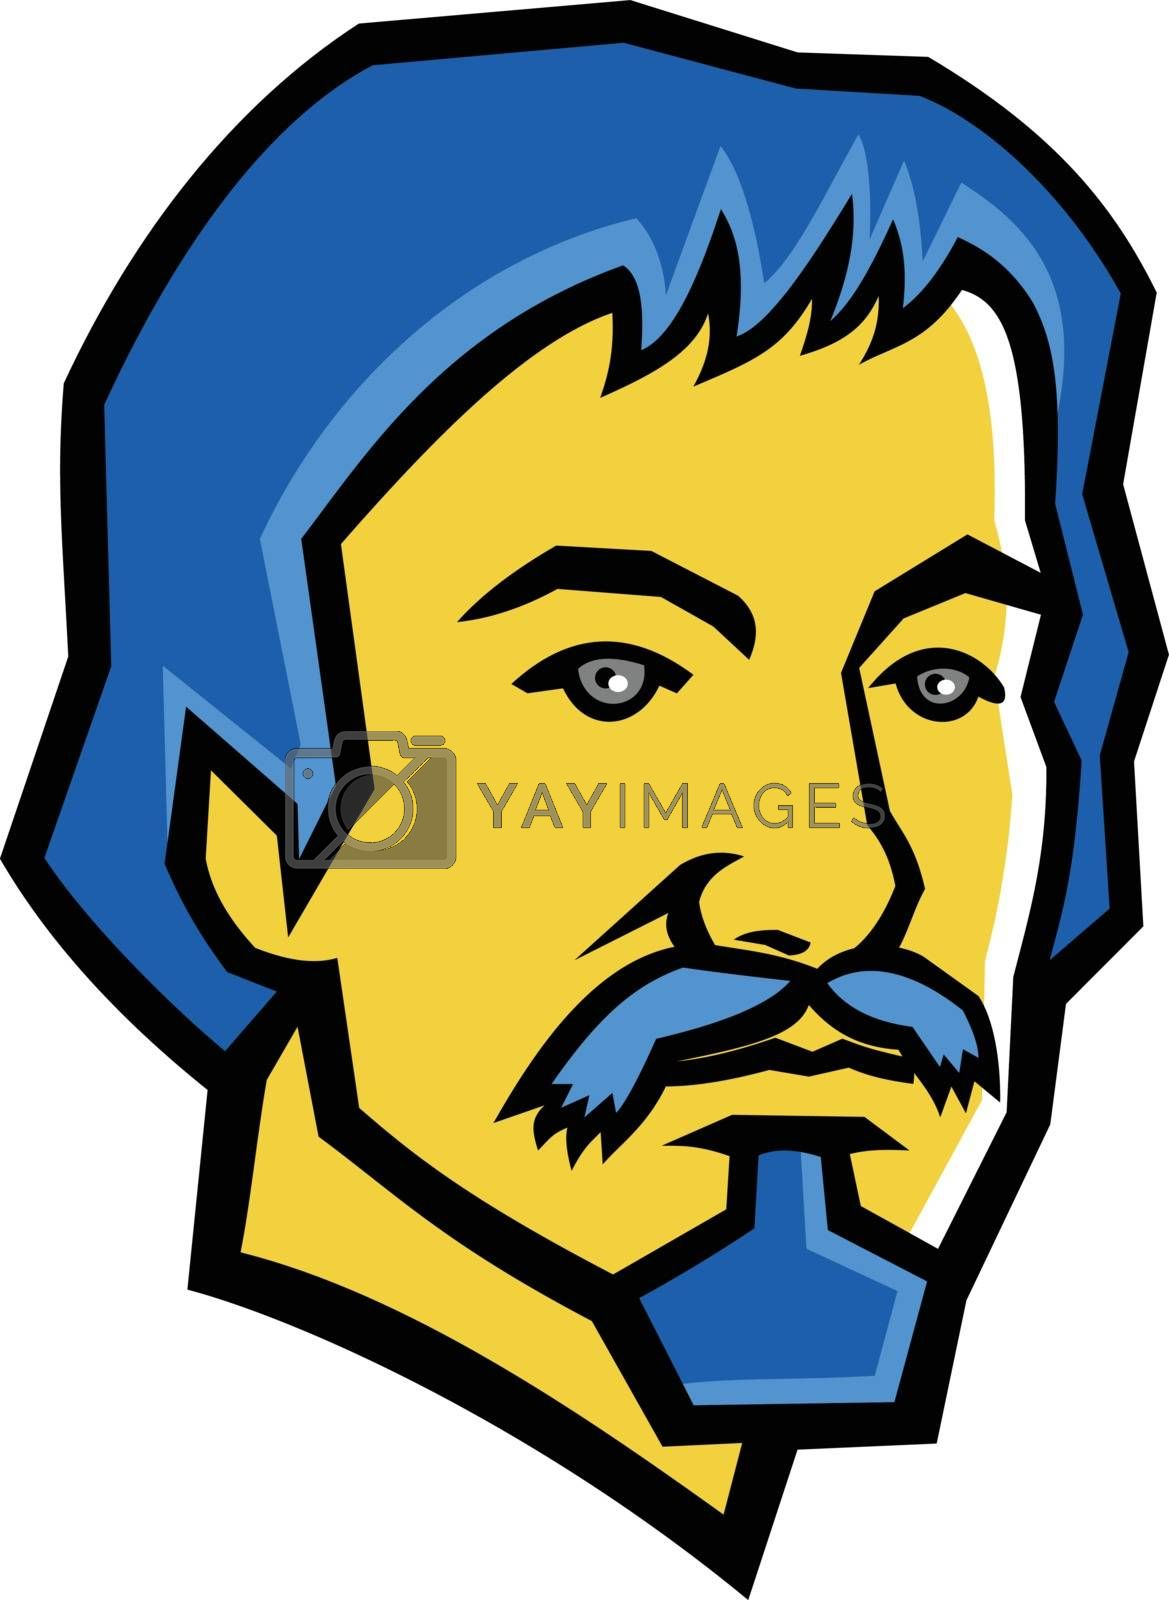 Mascot icon illustration of head of Michelangelo Merisi da Caravaggio, an Italian painter from the early 1590s to 1610 viewed from front on isolated background in retro style.